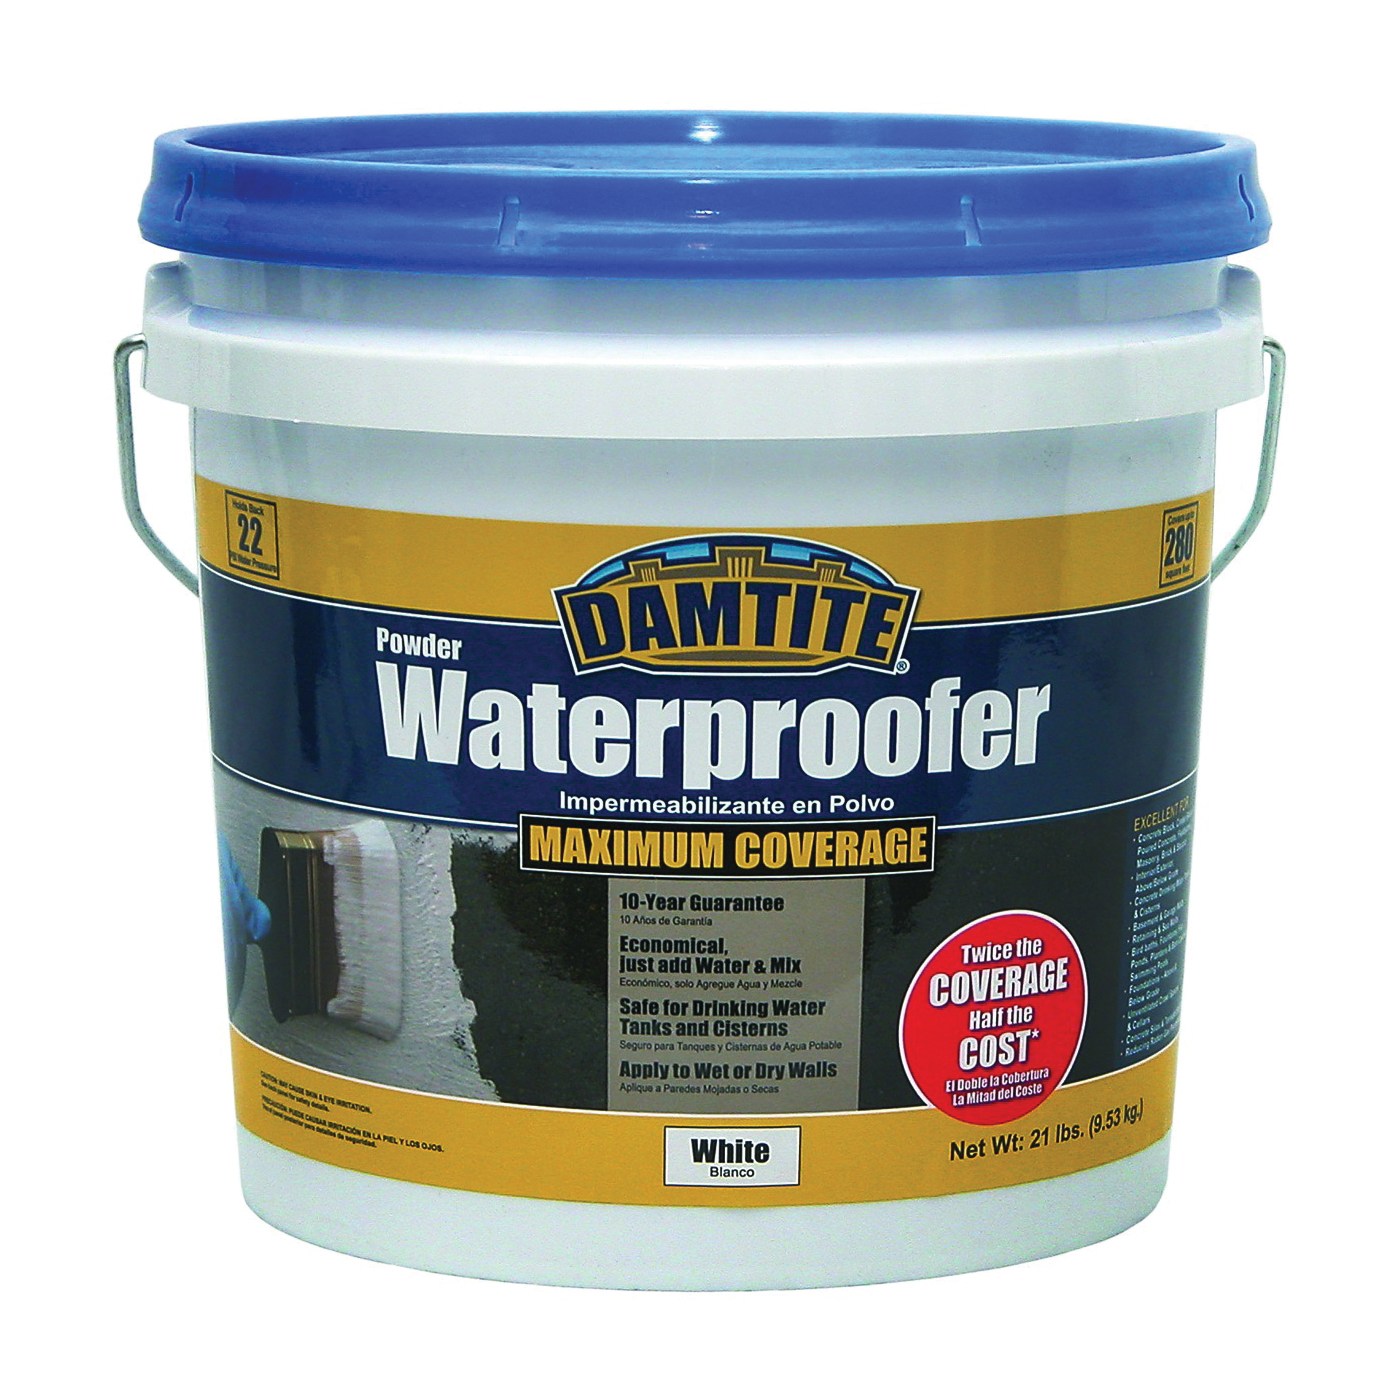 Picture of DAMTITE 01211 Powder Waterproofer, White, Powder, 21 lb Package, Pail